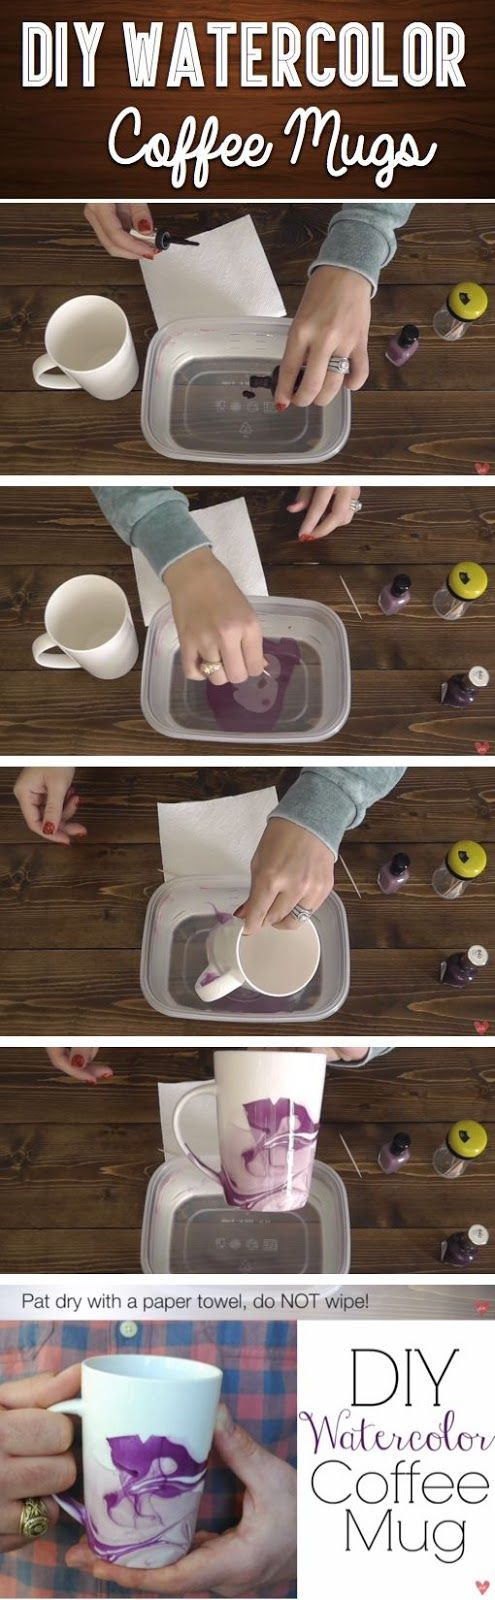 Craft Project Ideas: You Will Be Amazed To See What You Can Achieve With A Plain Coffee Cup And Some Nail Polish!